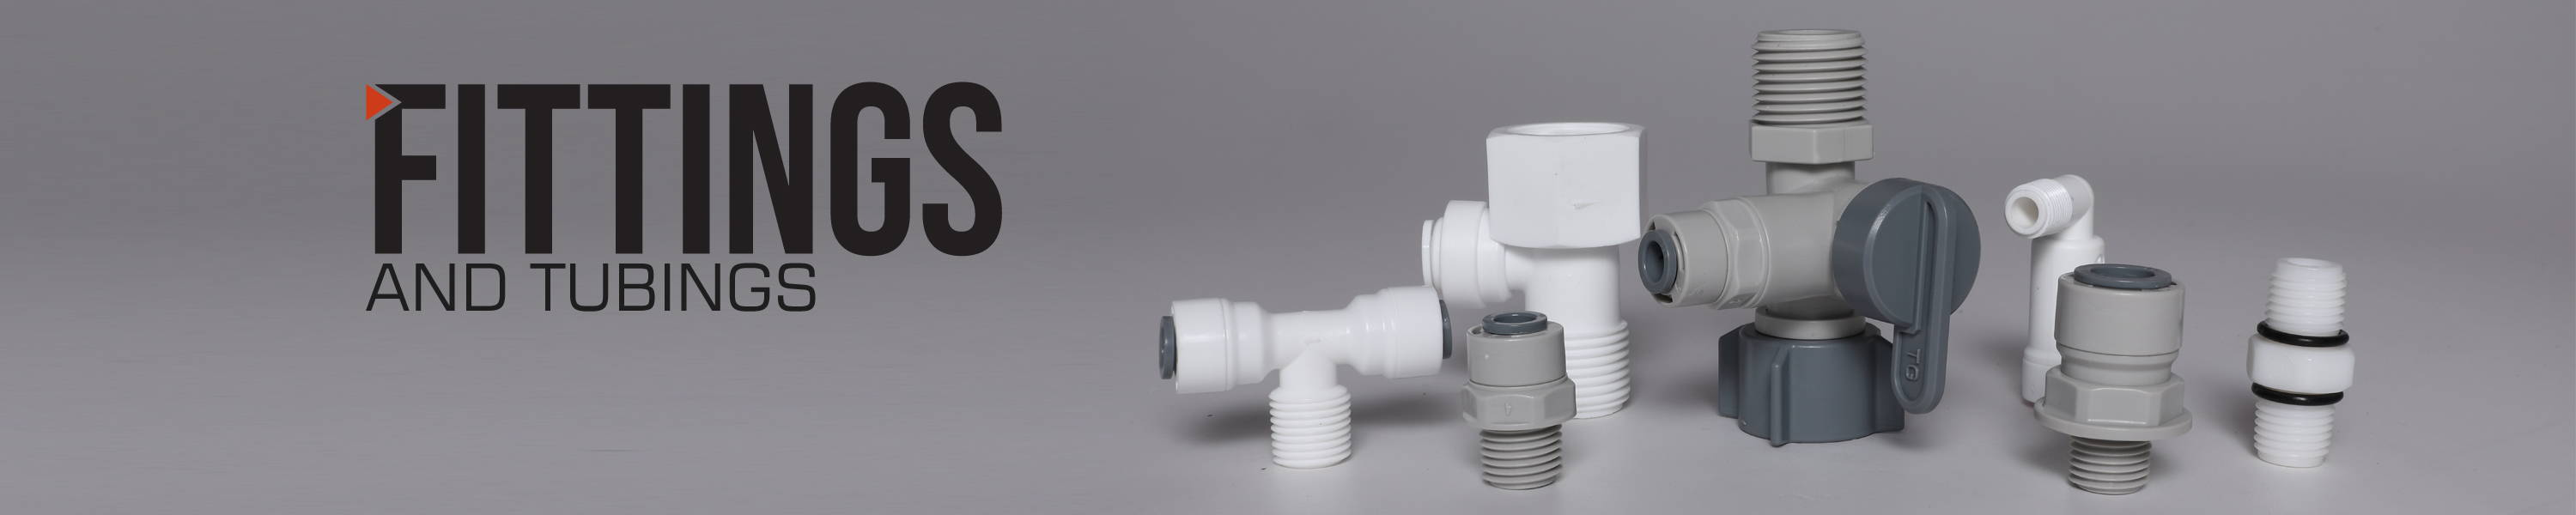 RO filters tubings and fittings